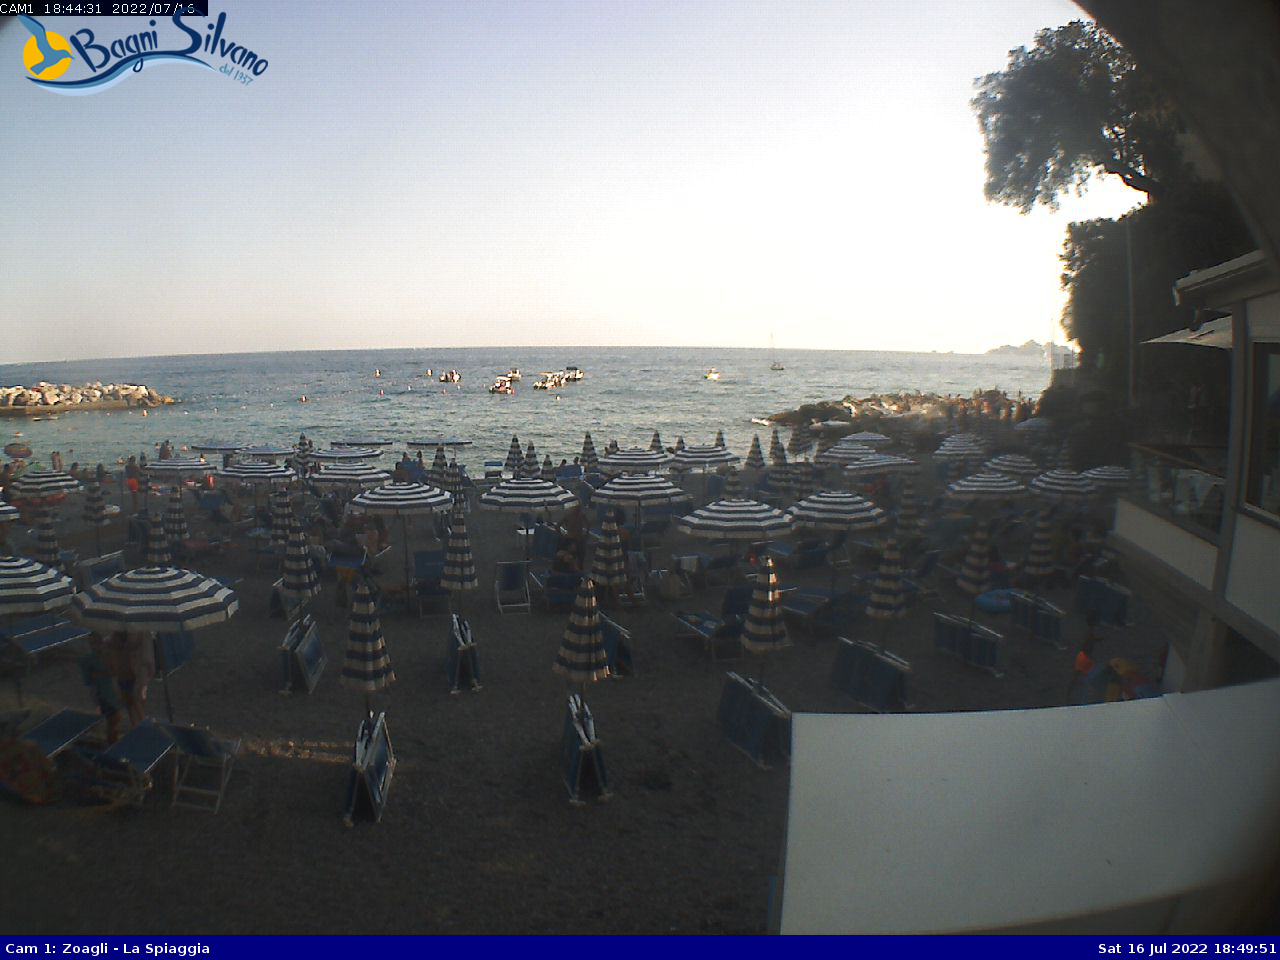 Webcam di Zoagli